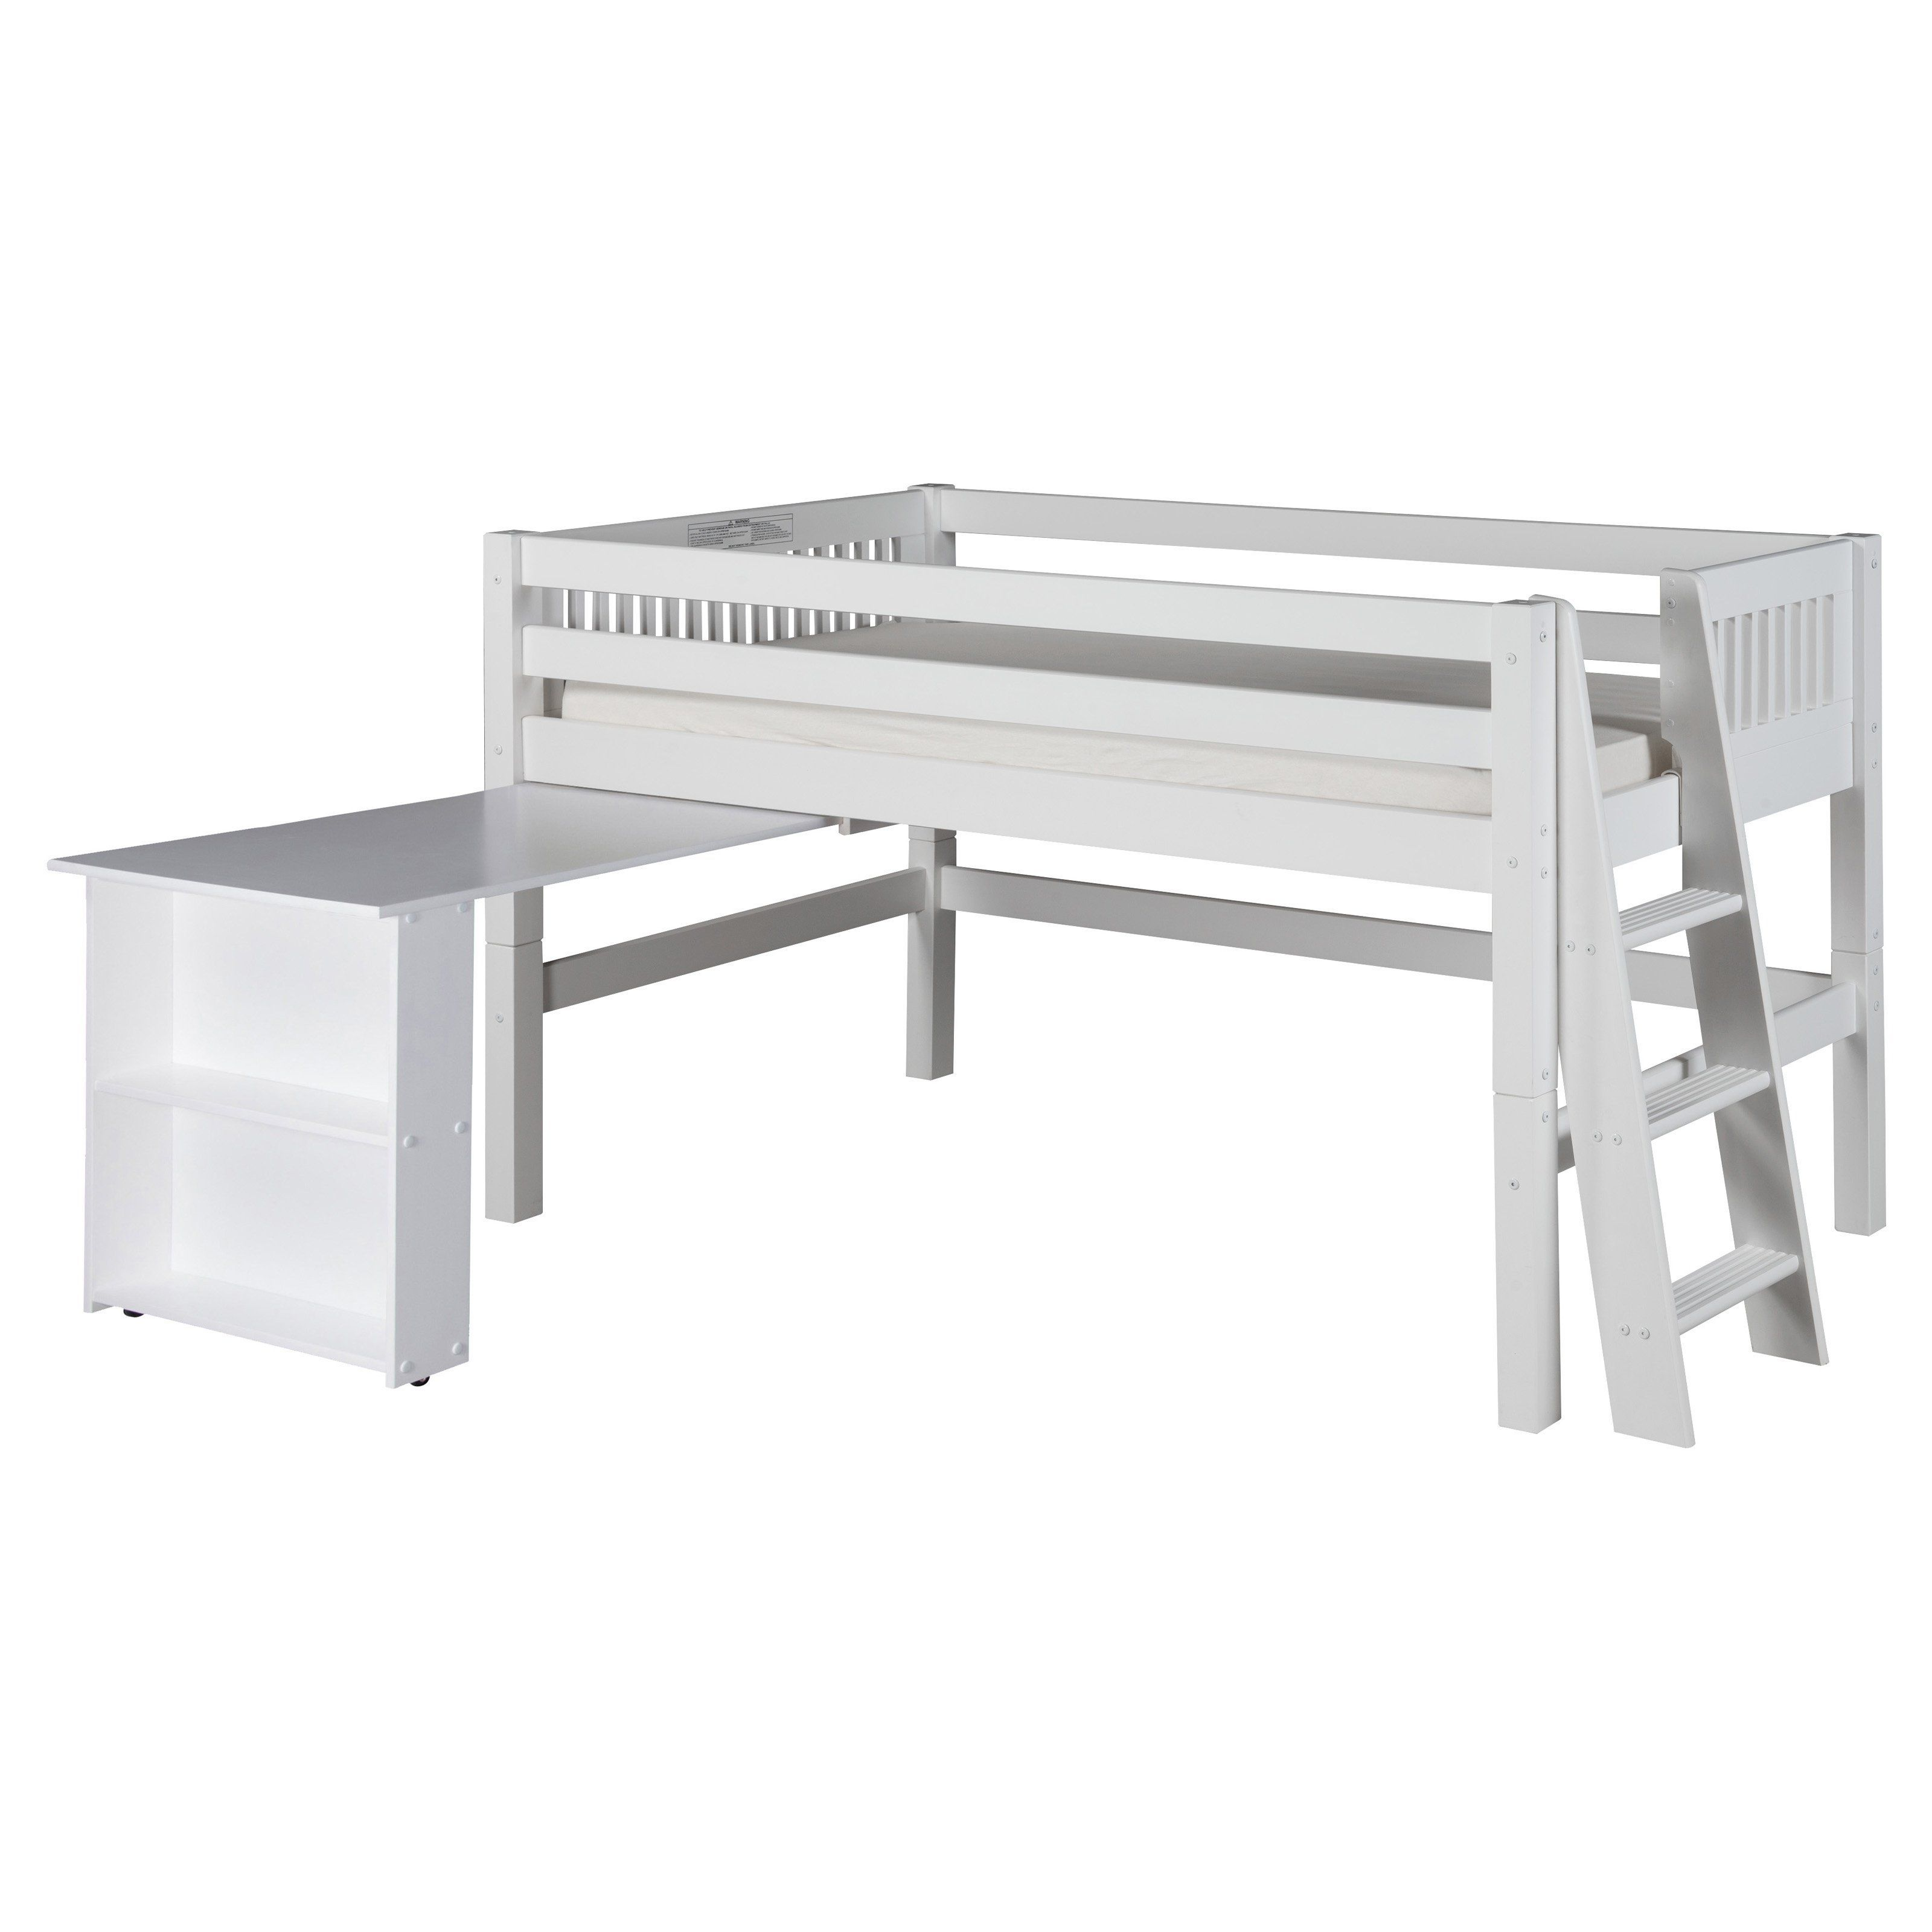 Low loft bed twin  Camaflexi Mission Headboard Low Loft Bed with Retractable Desk and